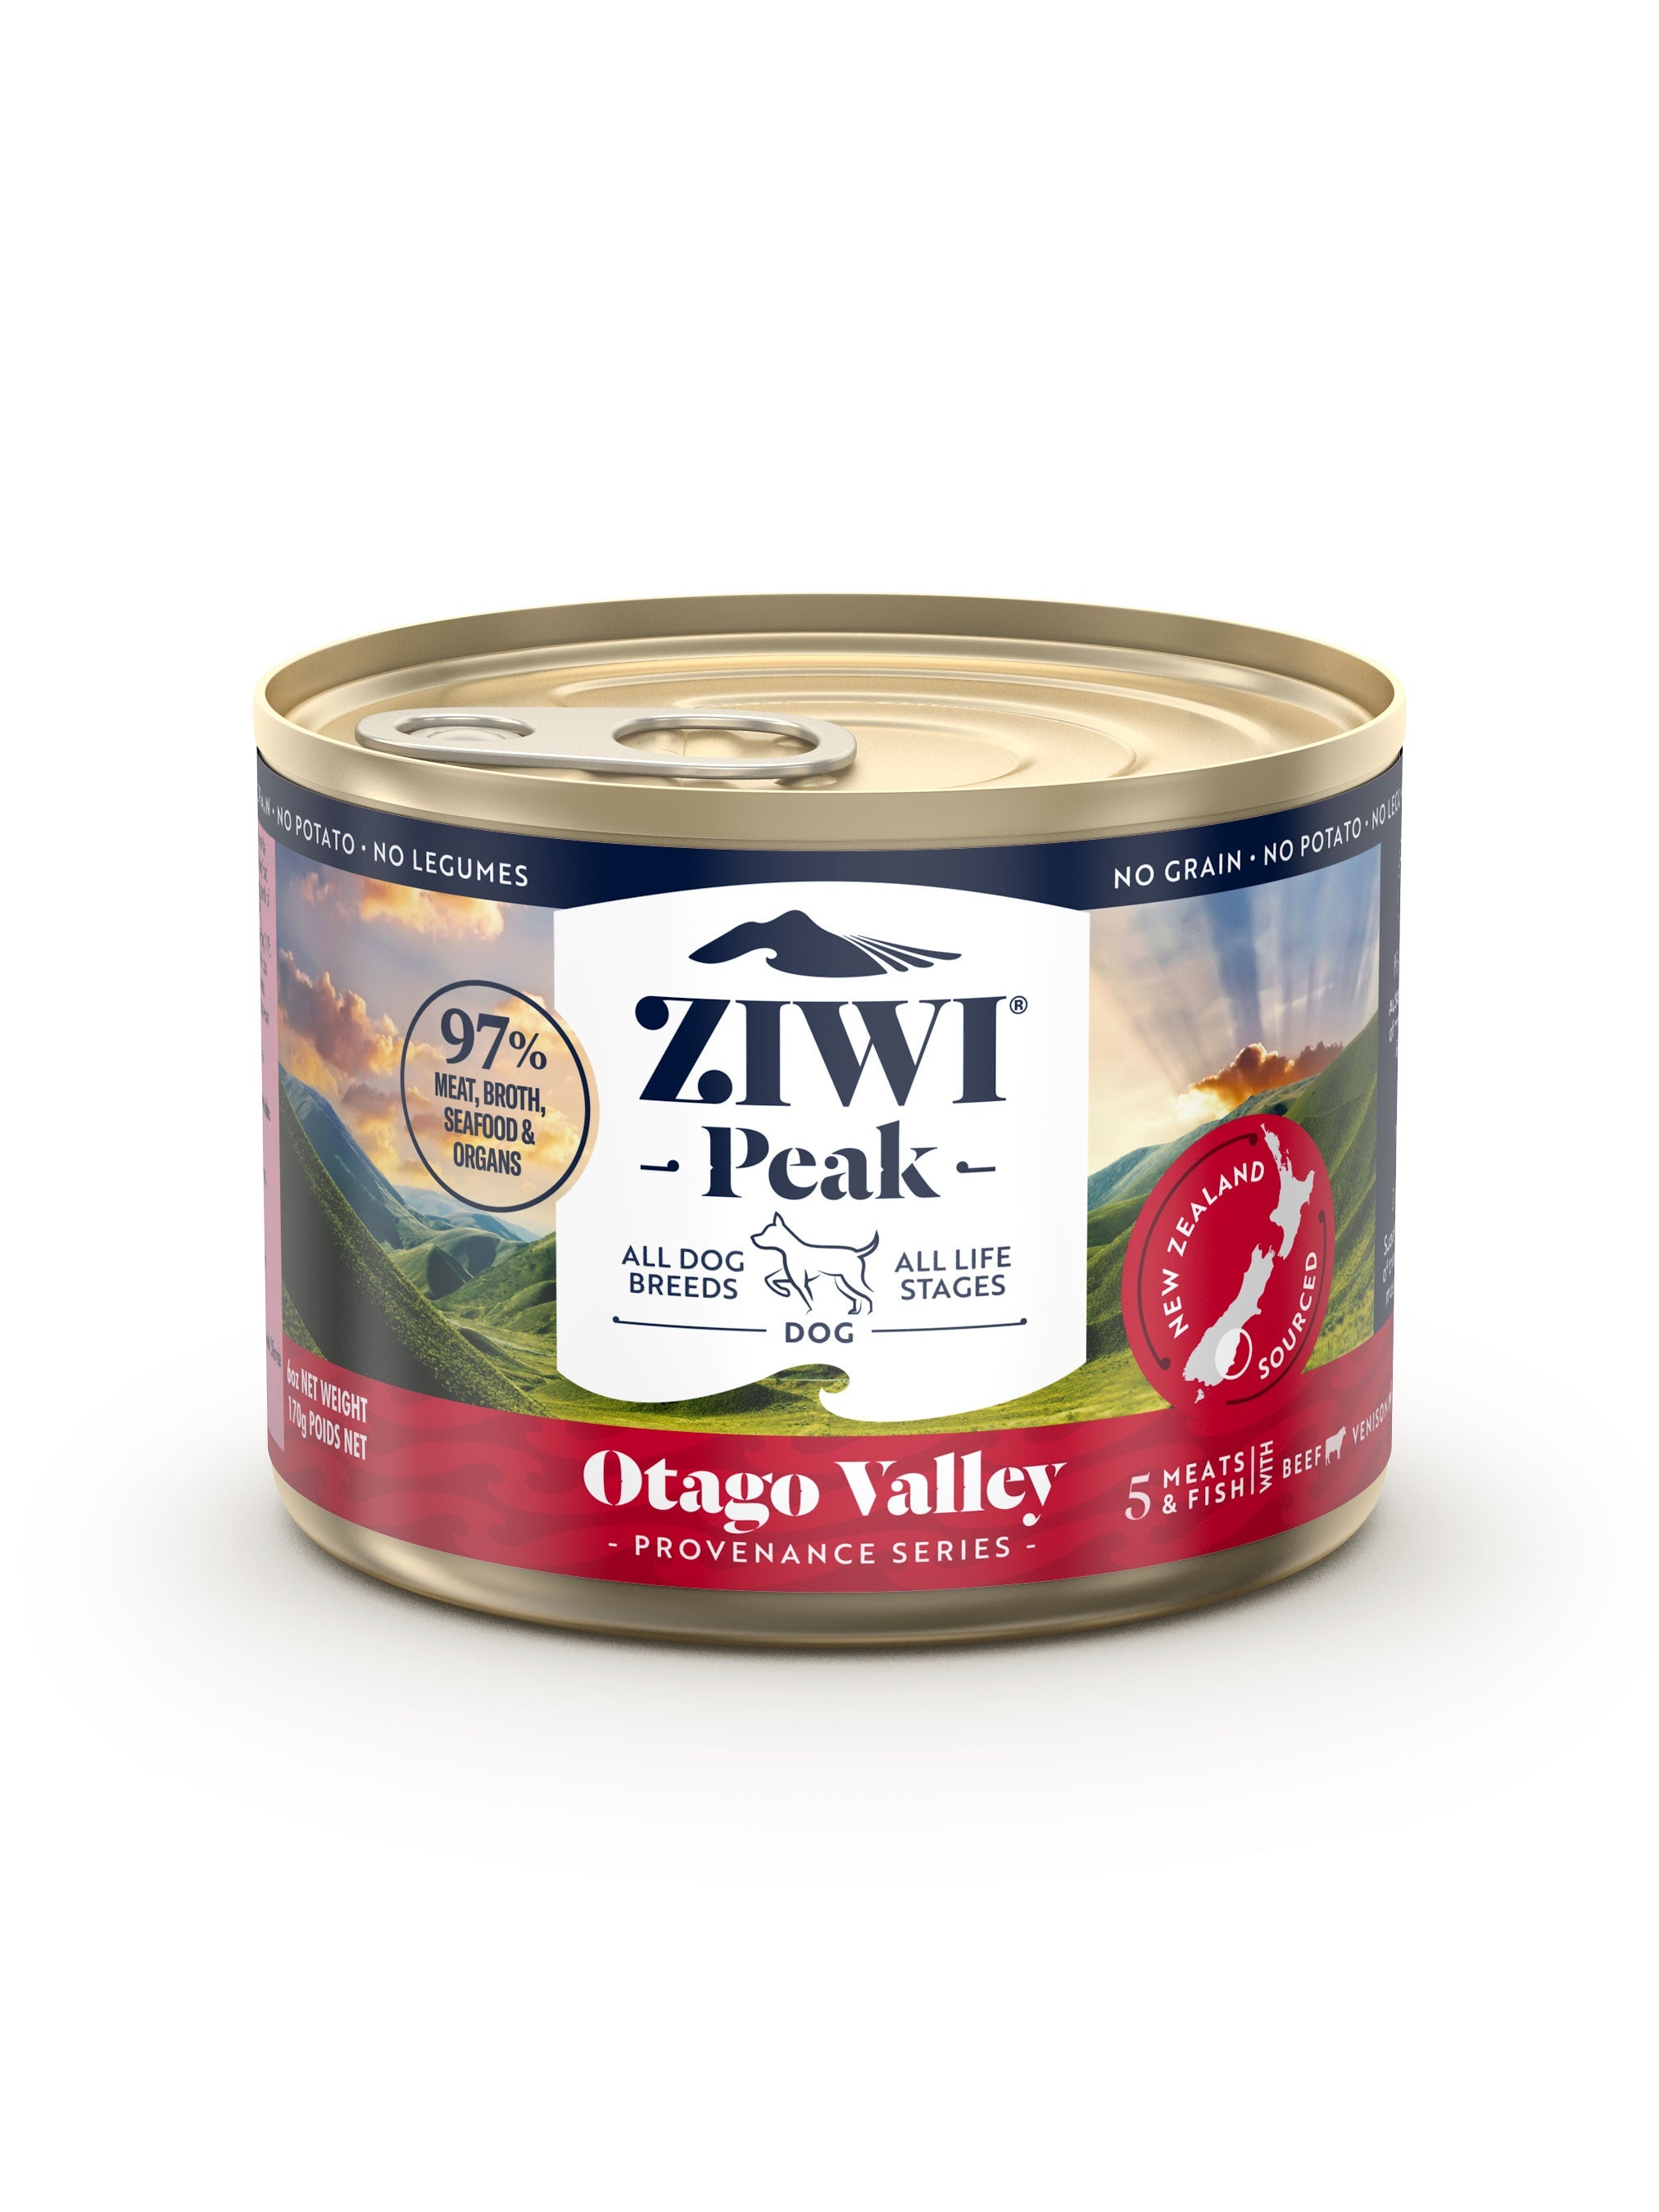 Ziwi Peak Provenance Canned Dog Food - Otago Valley